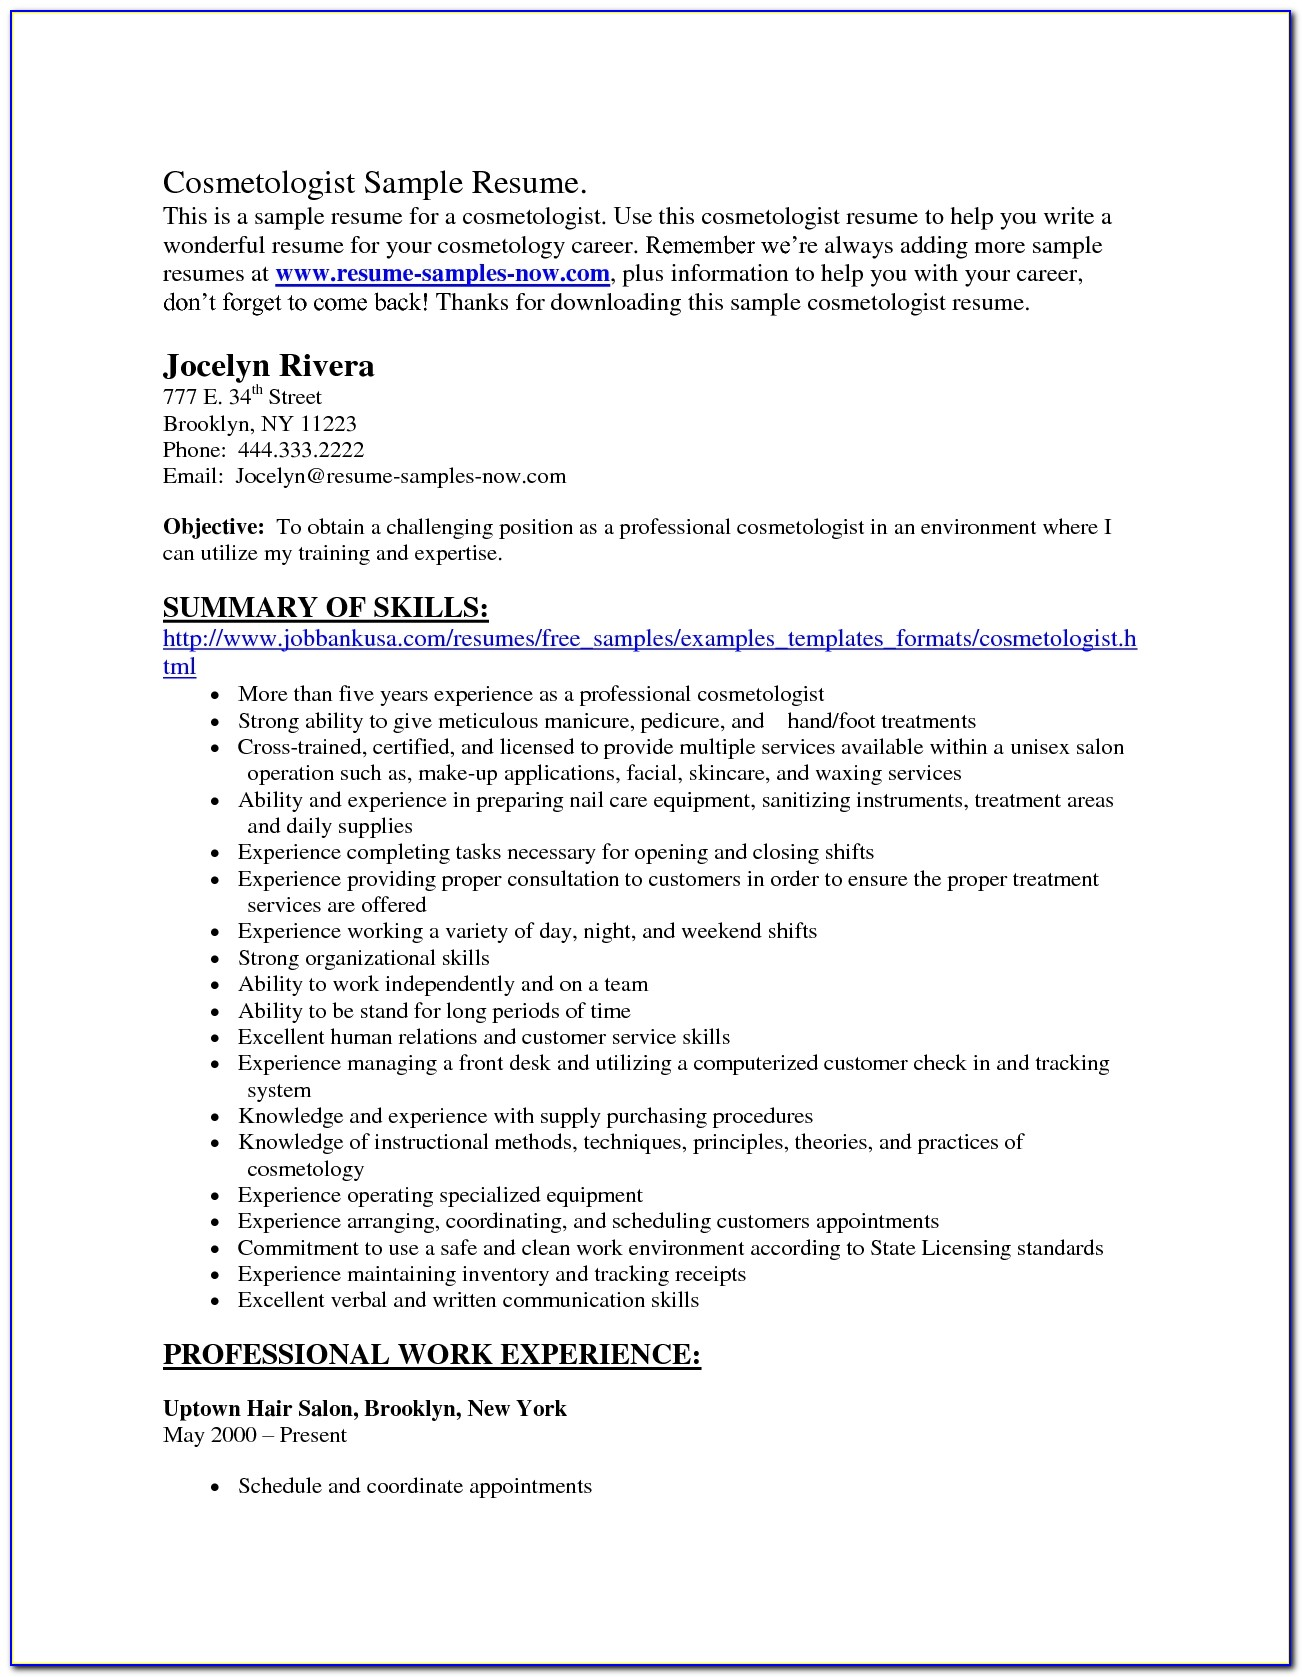 Cosmetology Resume Templates | Best Business Template Throughout Cosmetology Resumes Template